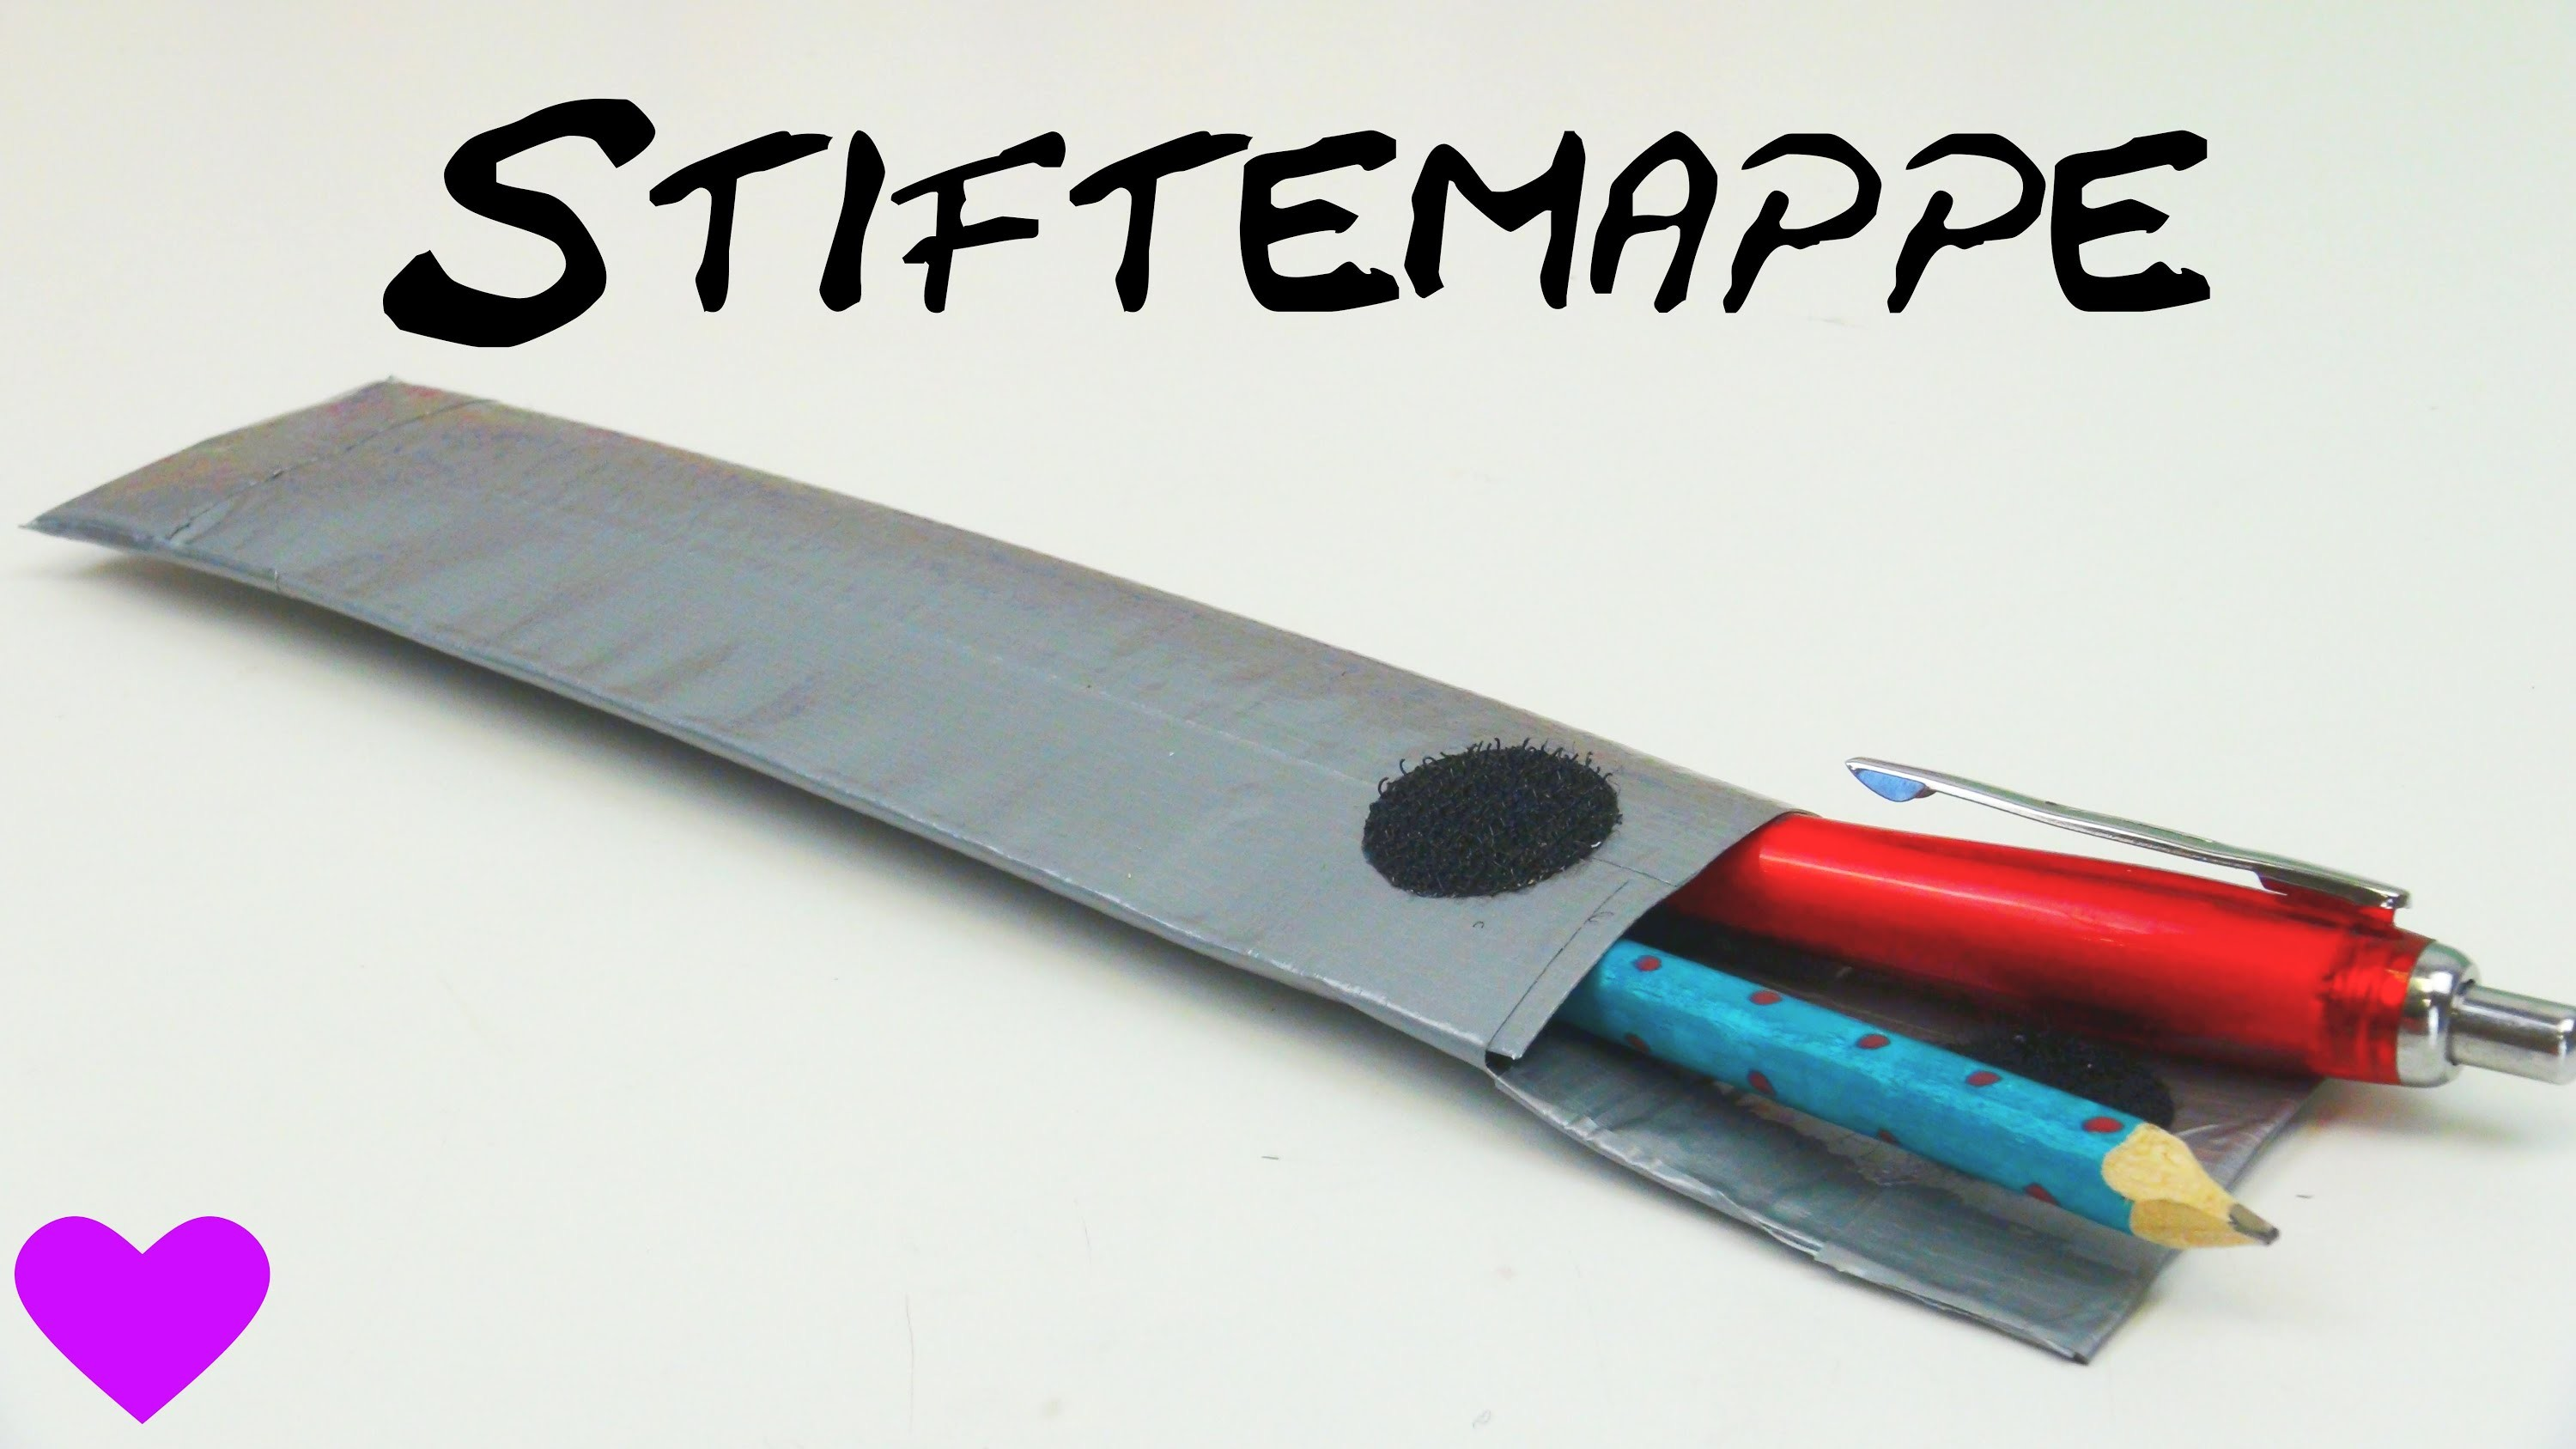 Stiftemappe basteln aus Panzertape. How to make an easy Pencil Case with Duct Tape | deutsch